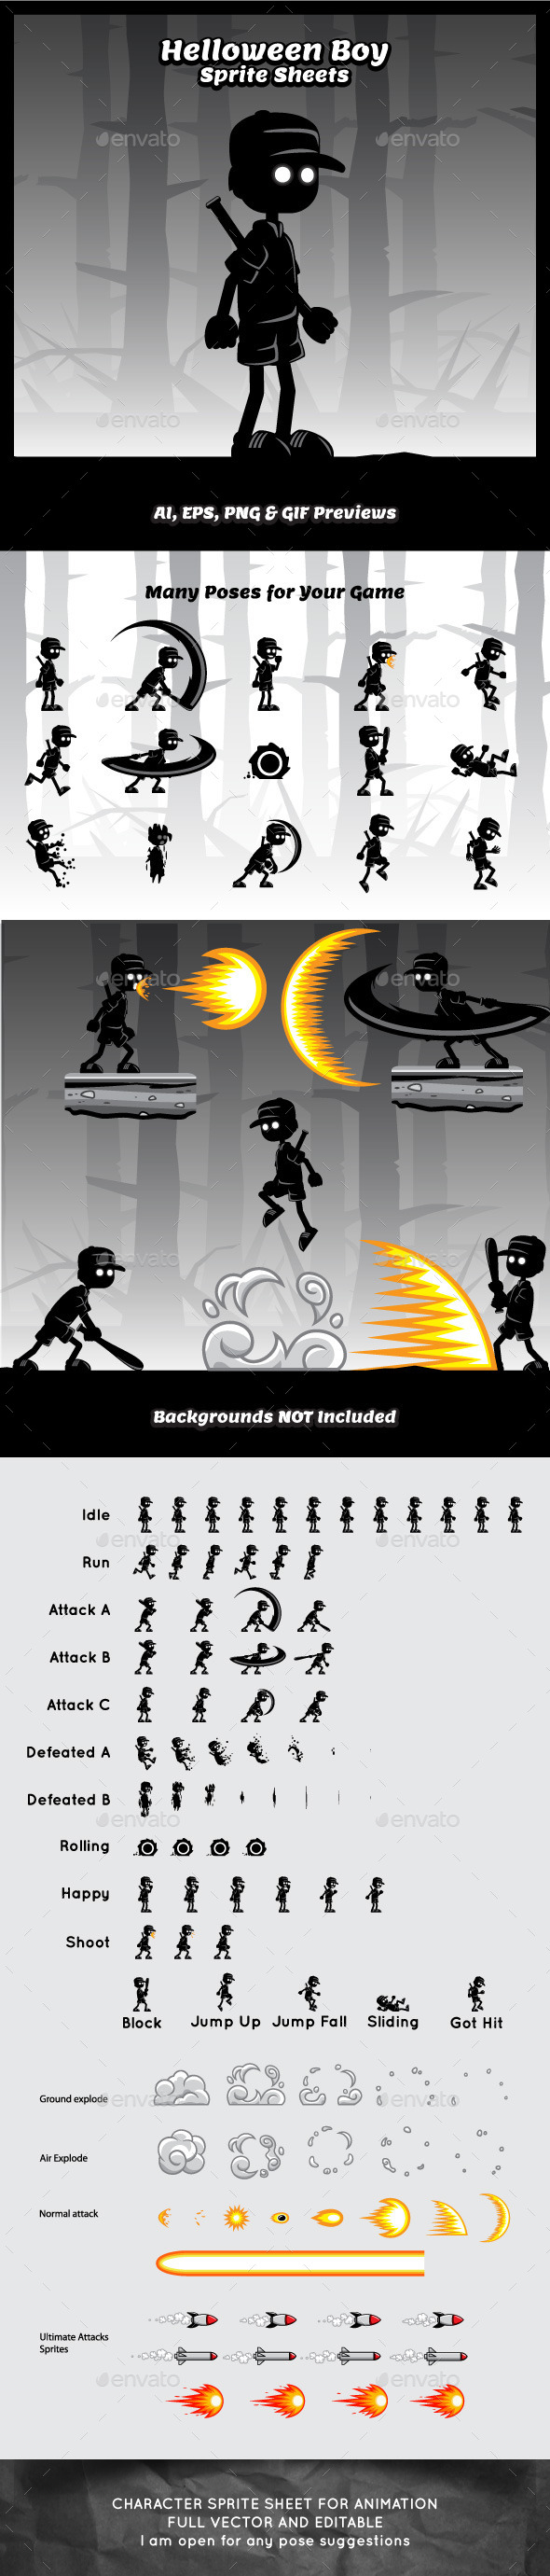 GraphicRiver Helloween Boy Game Character Sprite Sheets 9182856